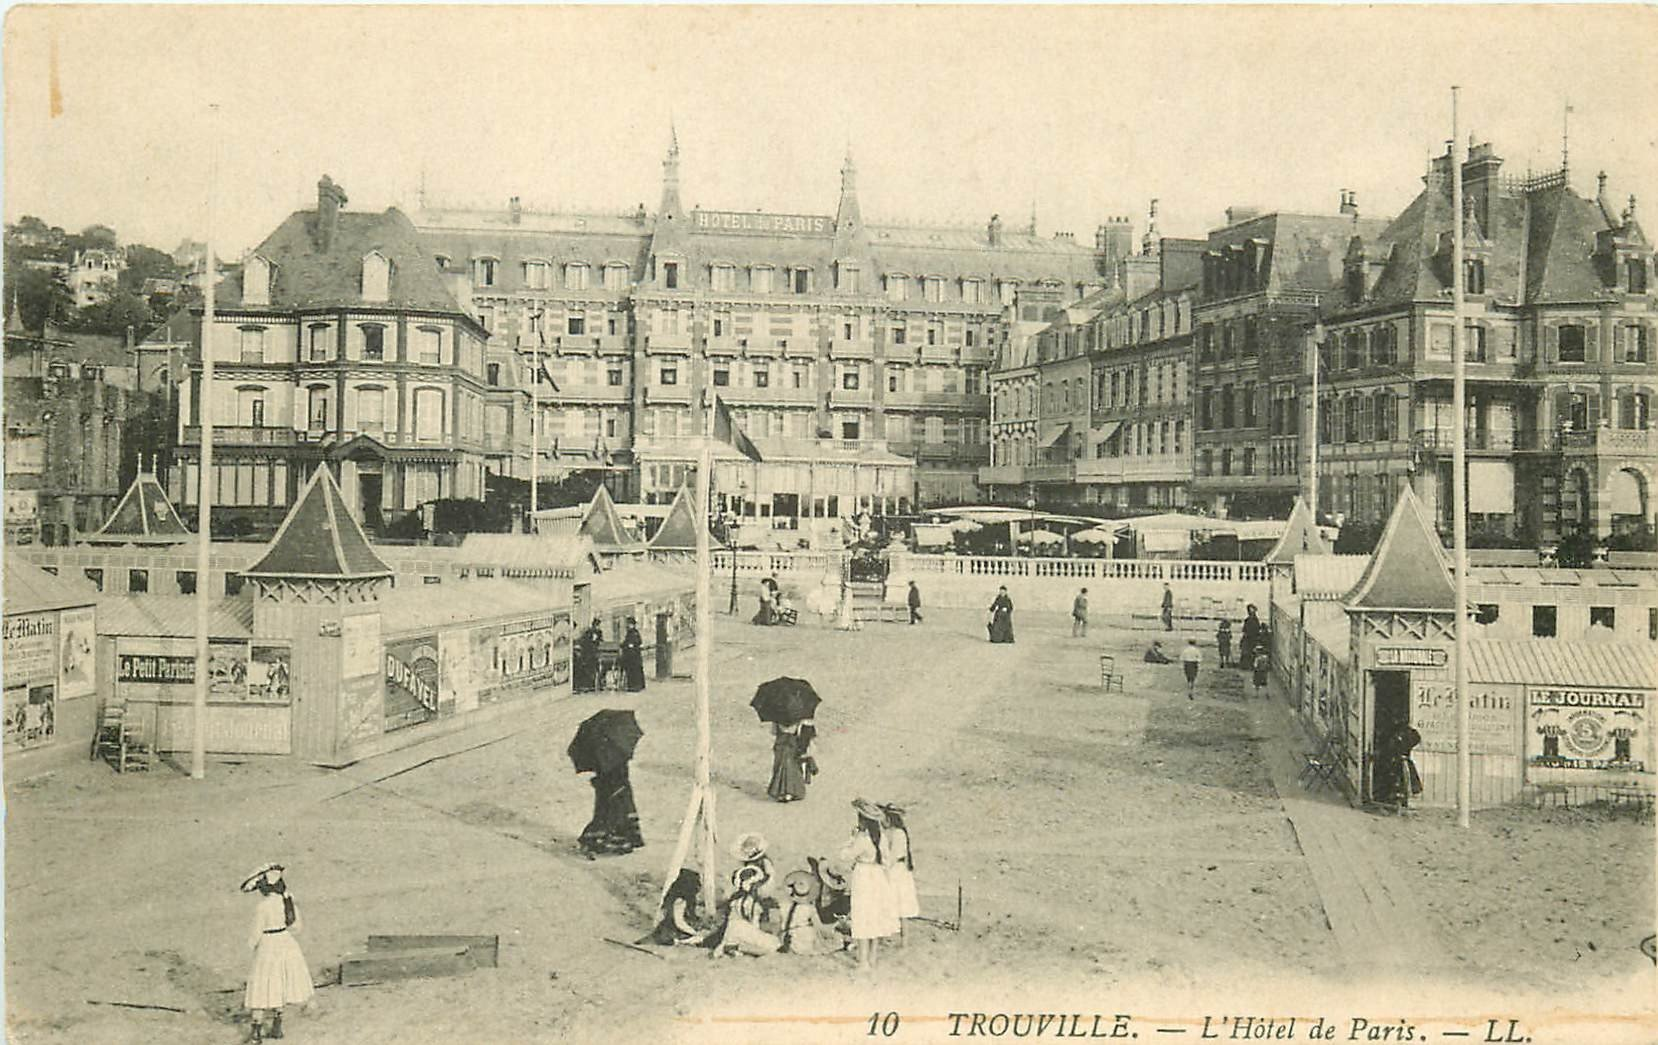 14 trouville h tel de paris for Hotel des bains paris 14